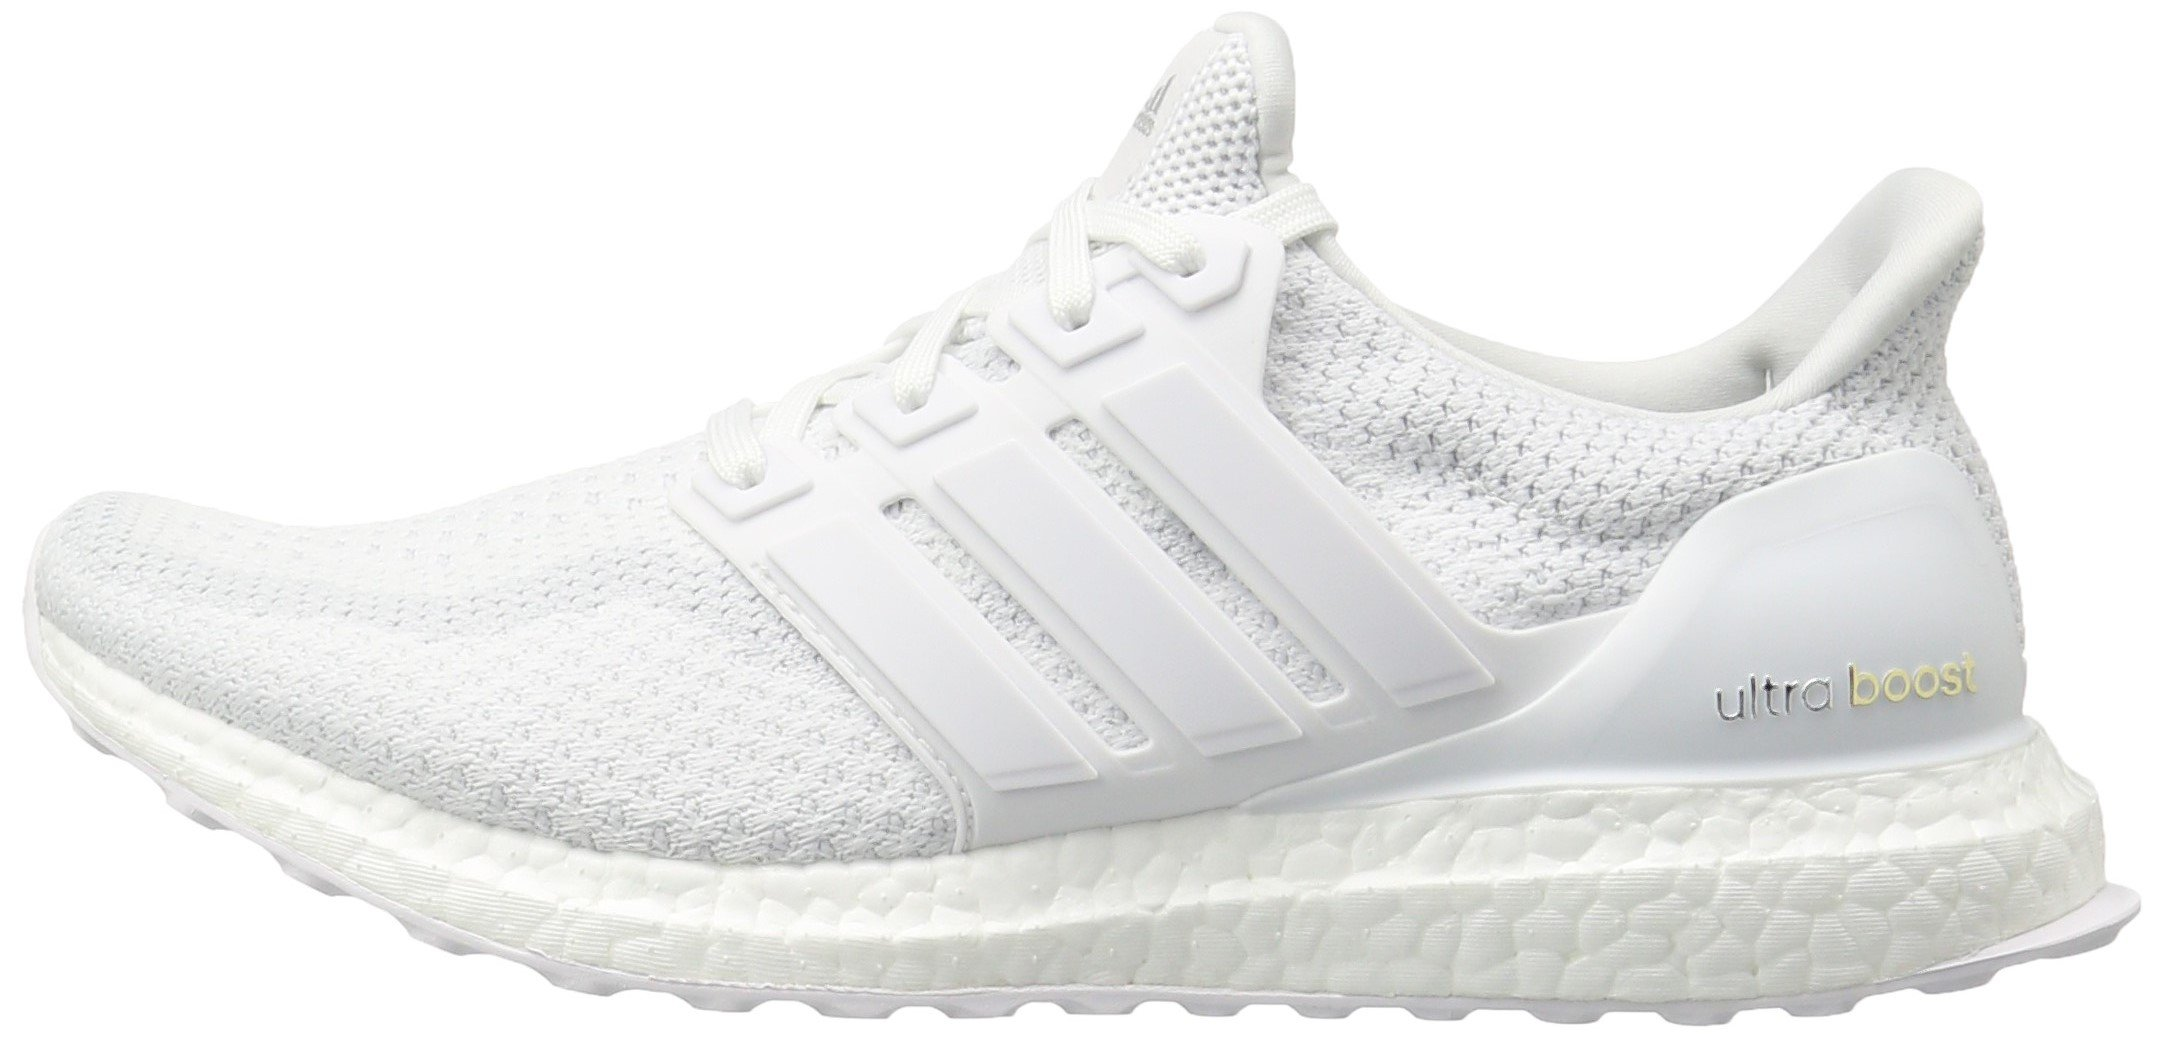 713b2S%2B%2BnGL - adidas Ultra Boost M, Men's Competition Running Shoes Multicolour Size: 8 UK M Crystal White